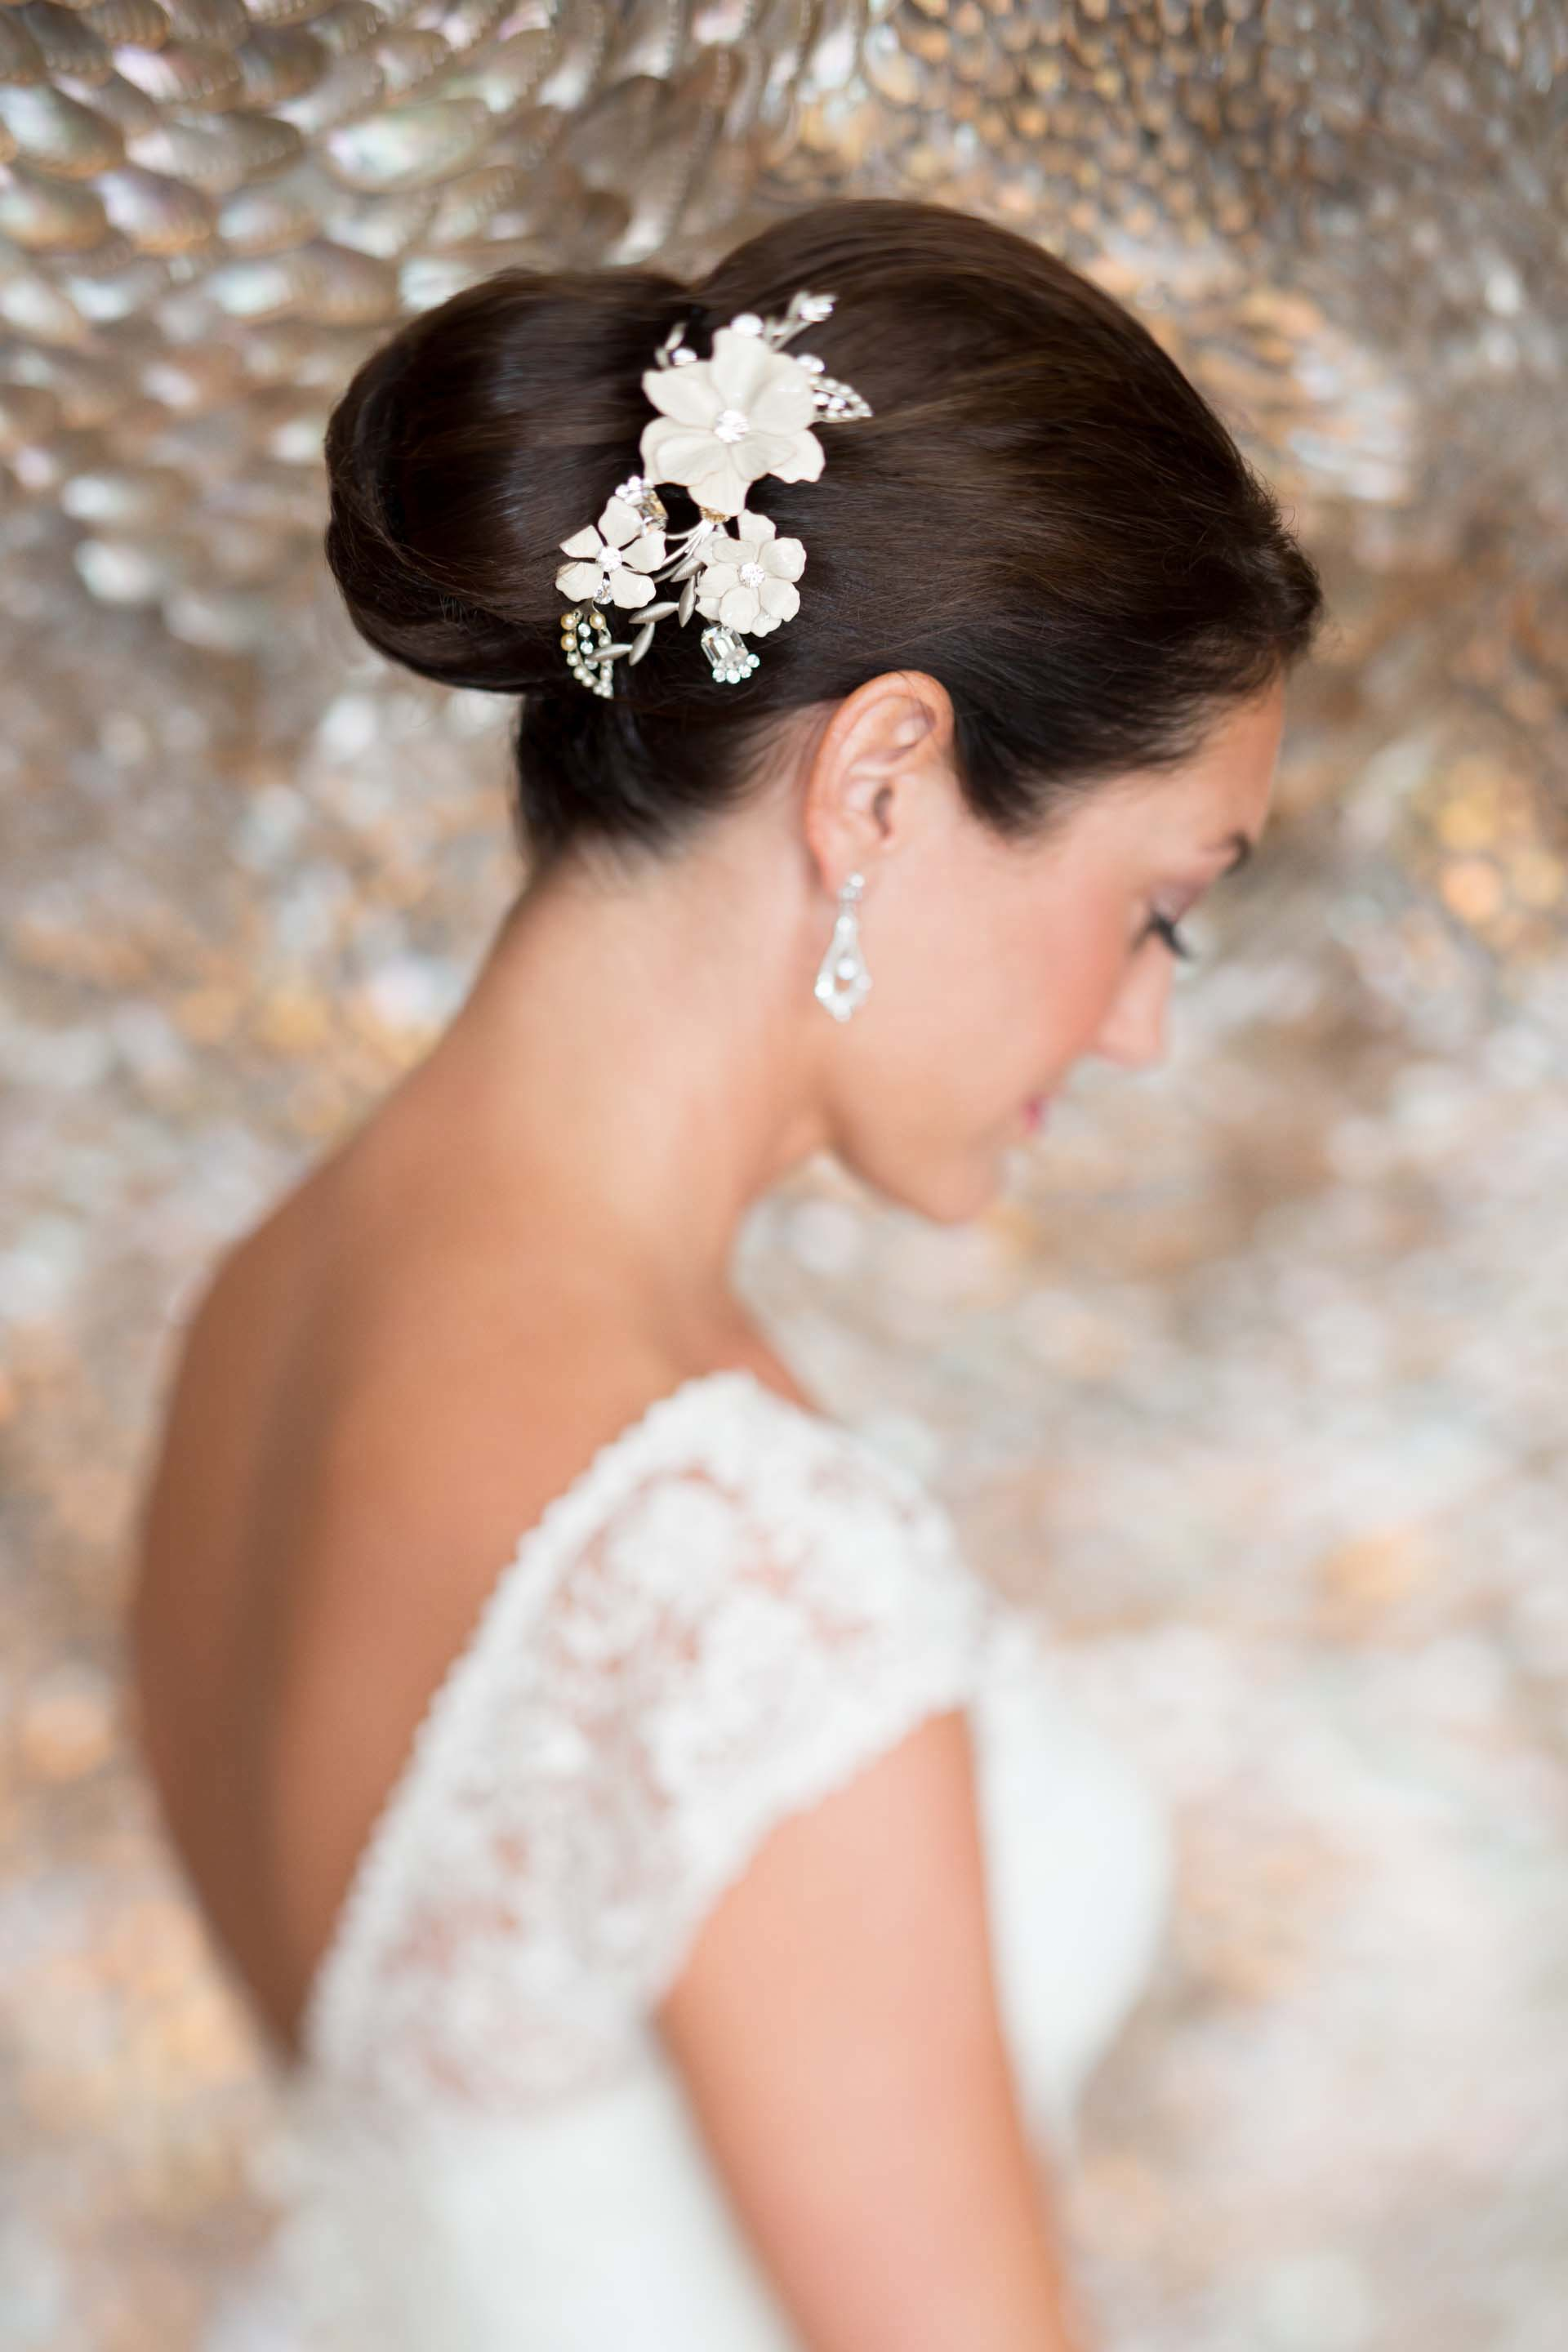 gorgeous hair accessories for brides on their wedding day - inside